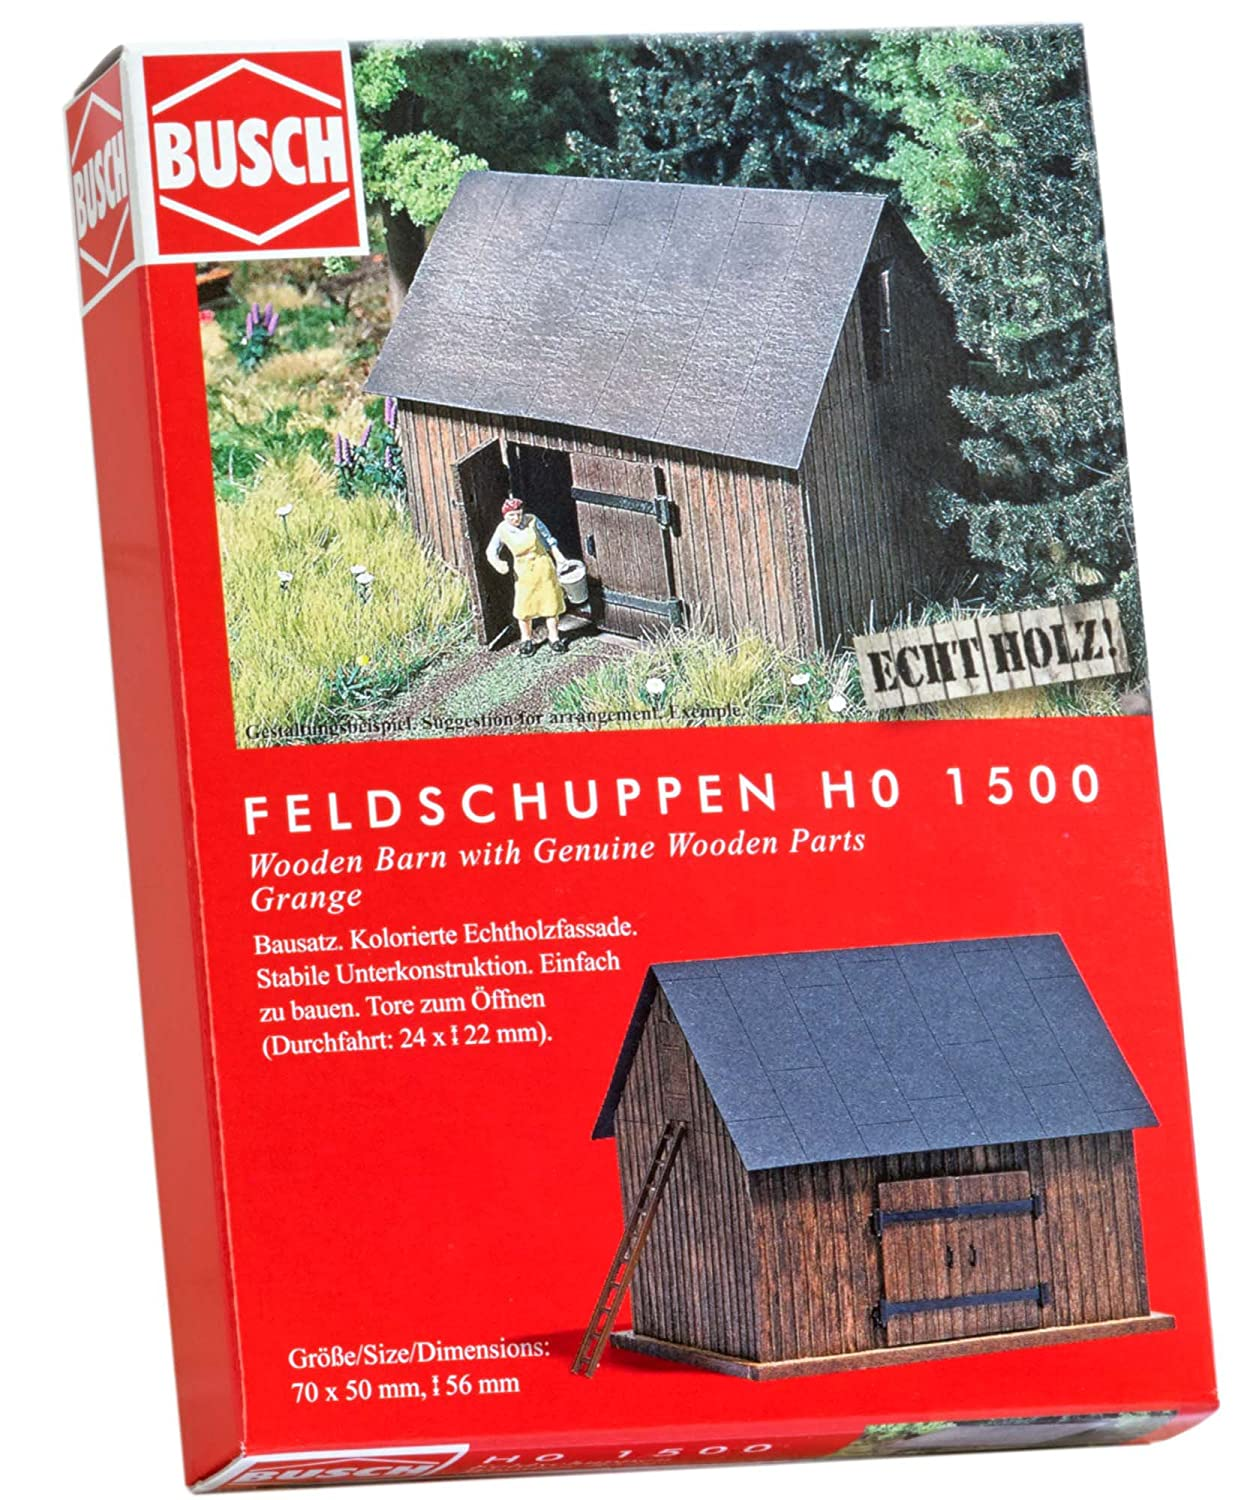 Busch 1500 Wooden Barn with Wood Parts HO Structure Scale Model